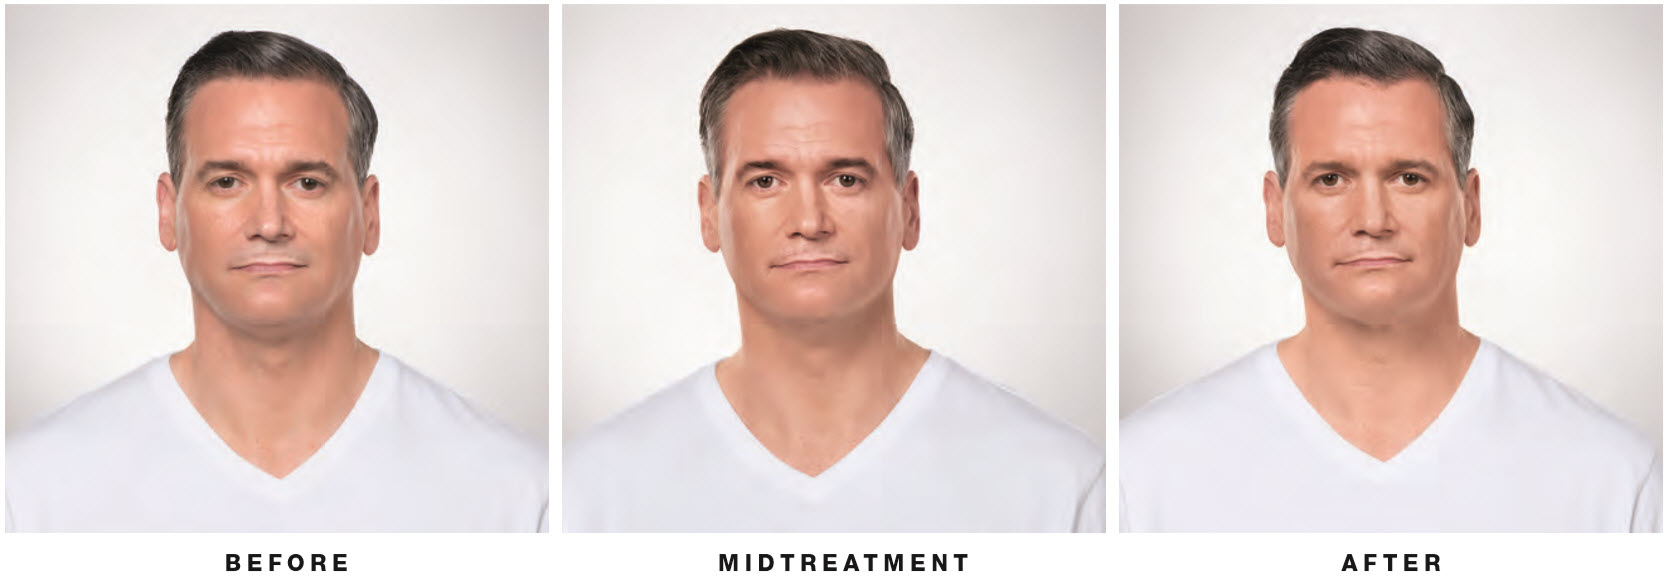 kybella-man-front-view-lake-norman-aesthetics-concierge-med-spa-laser-center-mooresville-nc-28117